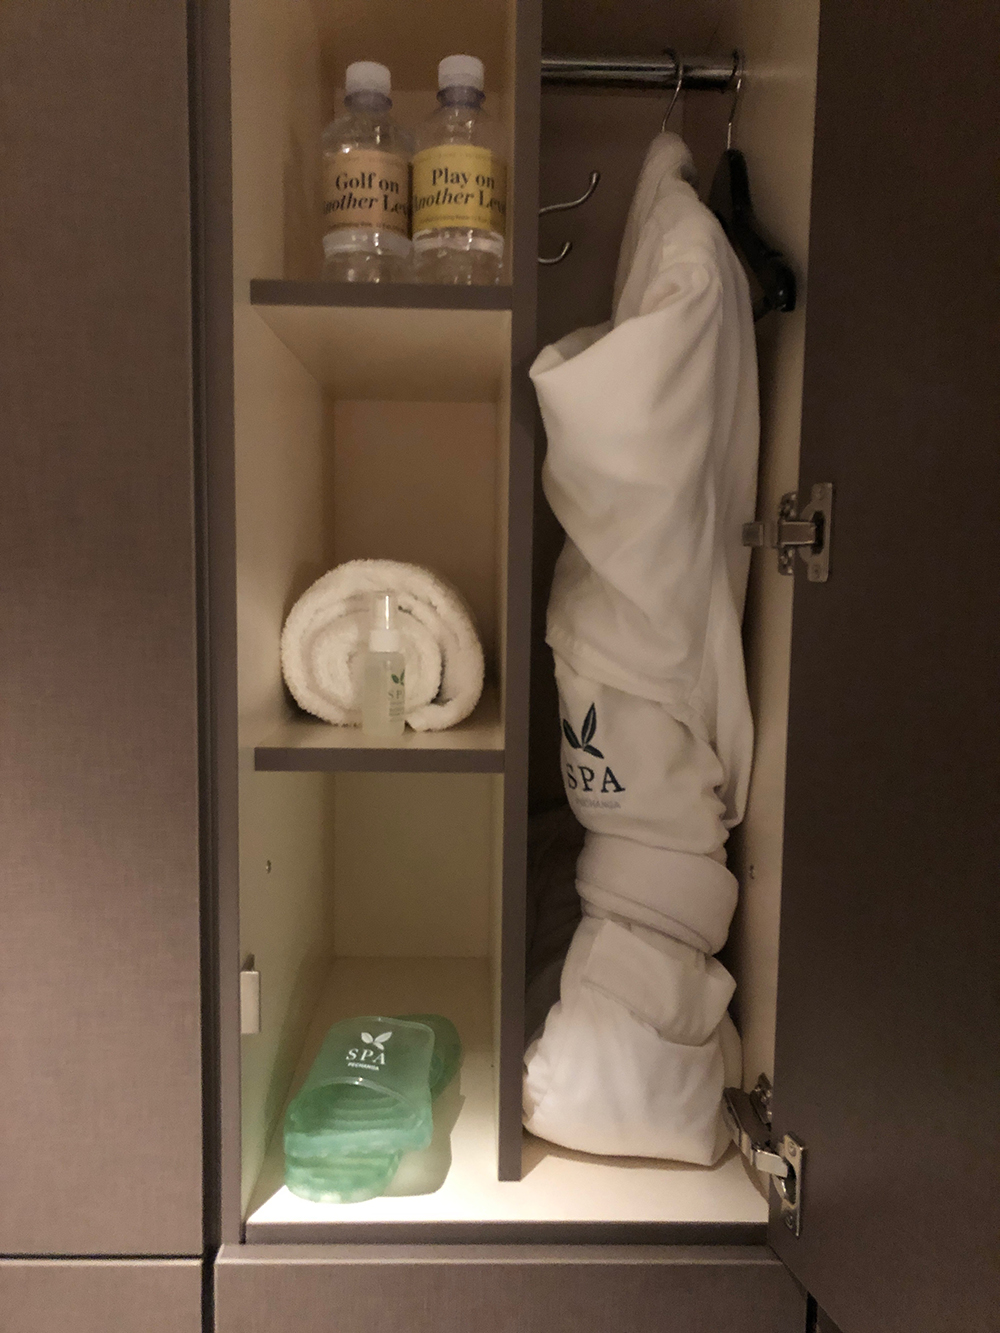 The generously stocked lockers in the Spa.